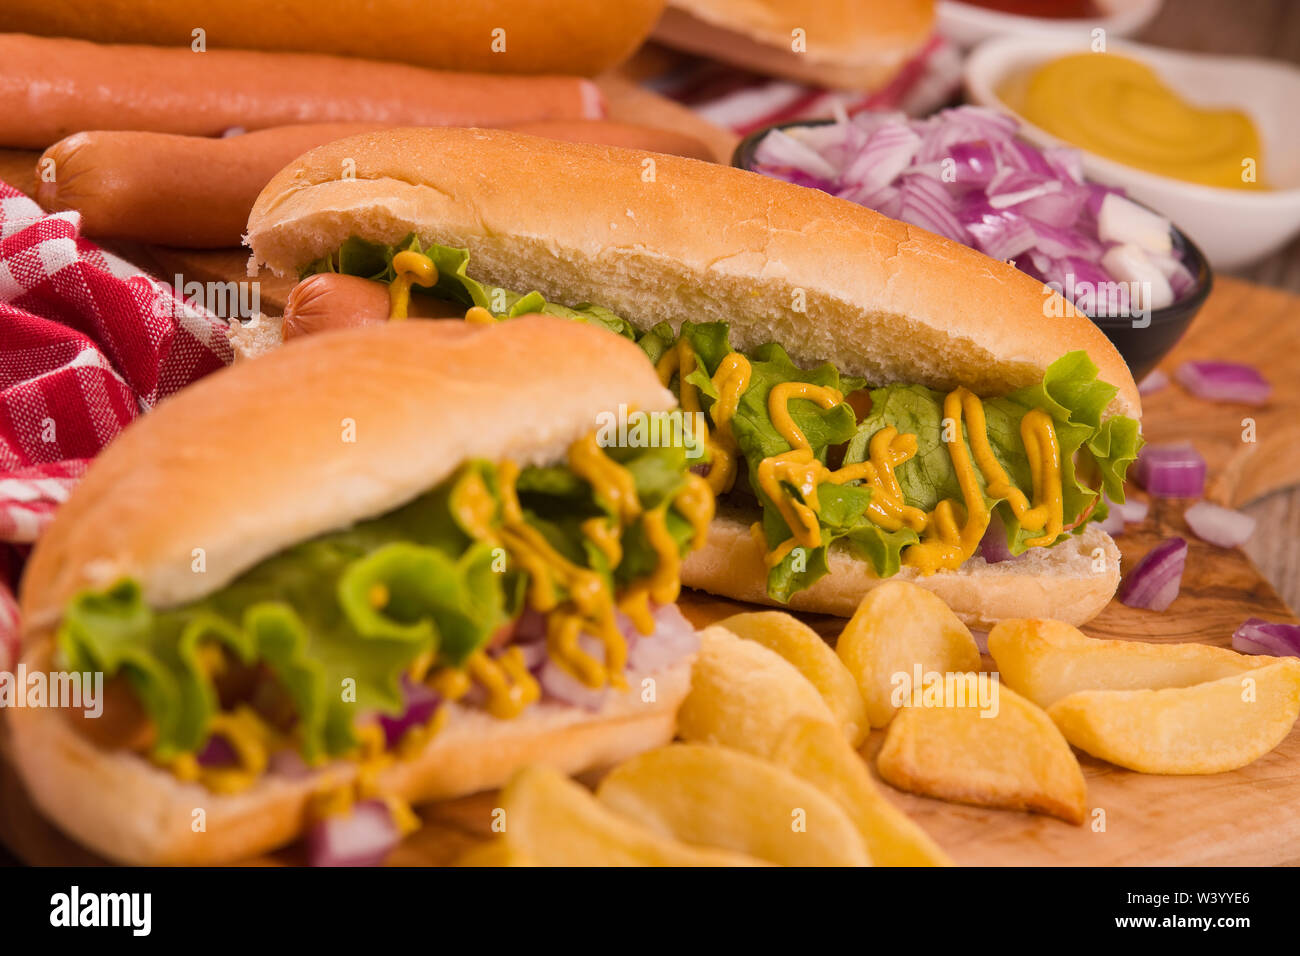 Hot Dogs. Stockbild